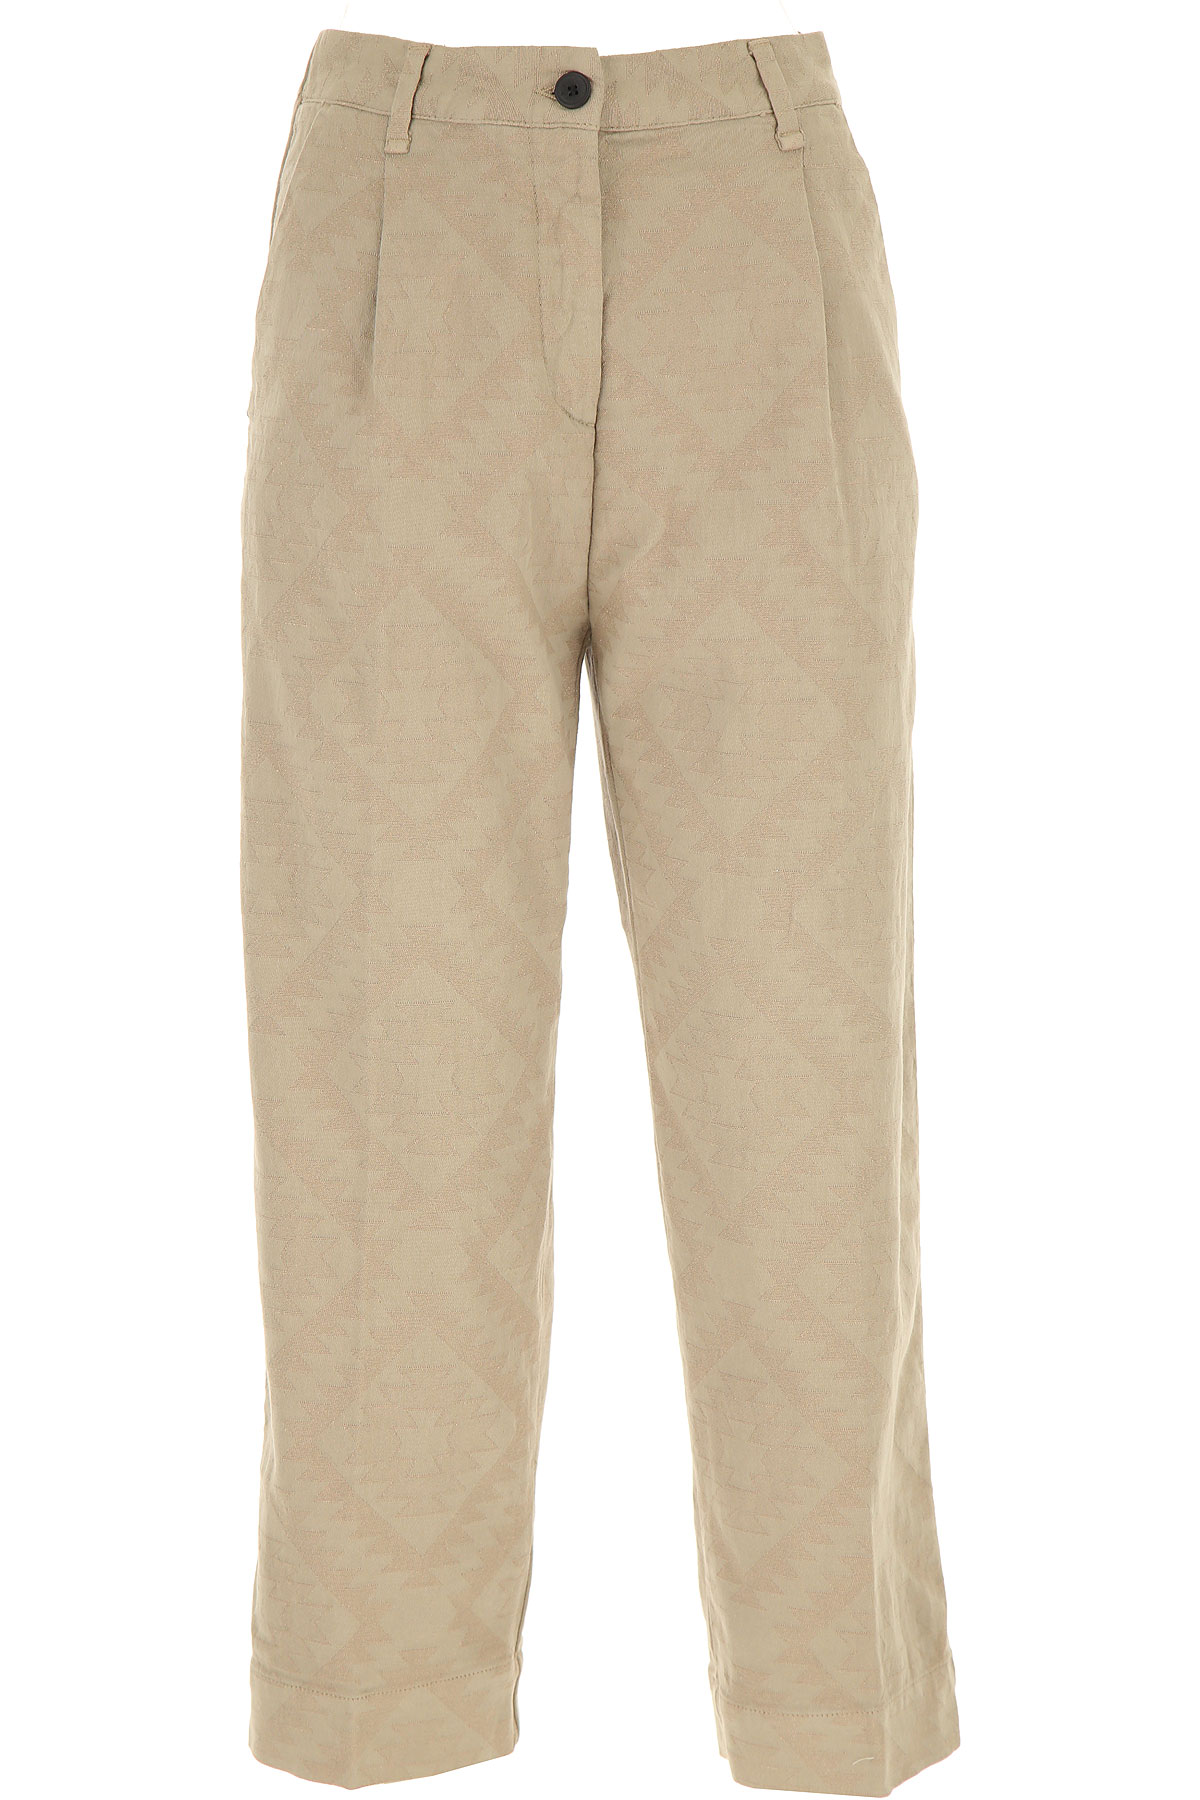 White Sand Pants for Women, Beige, Cotton, 2019, 24 28